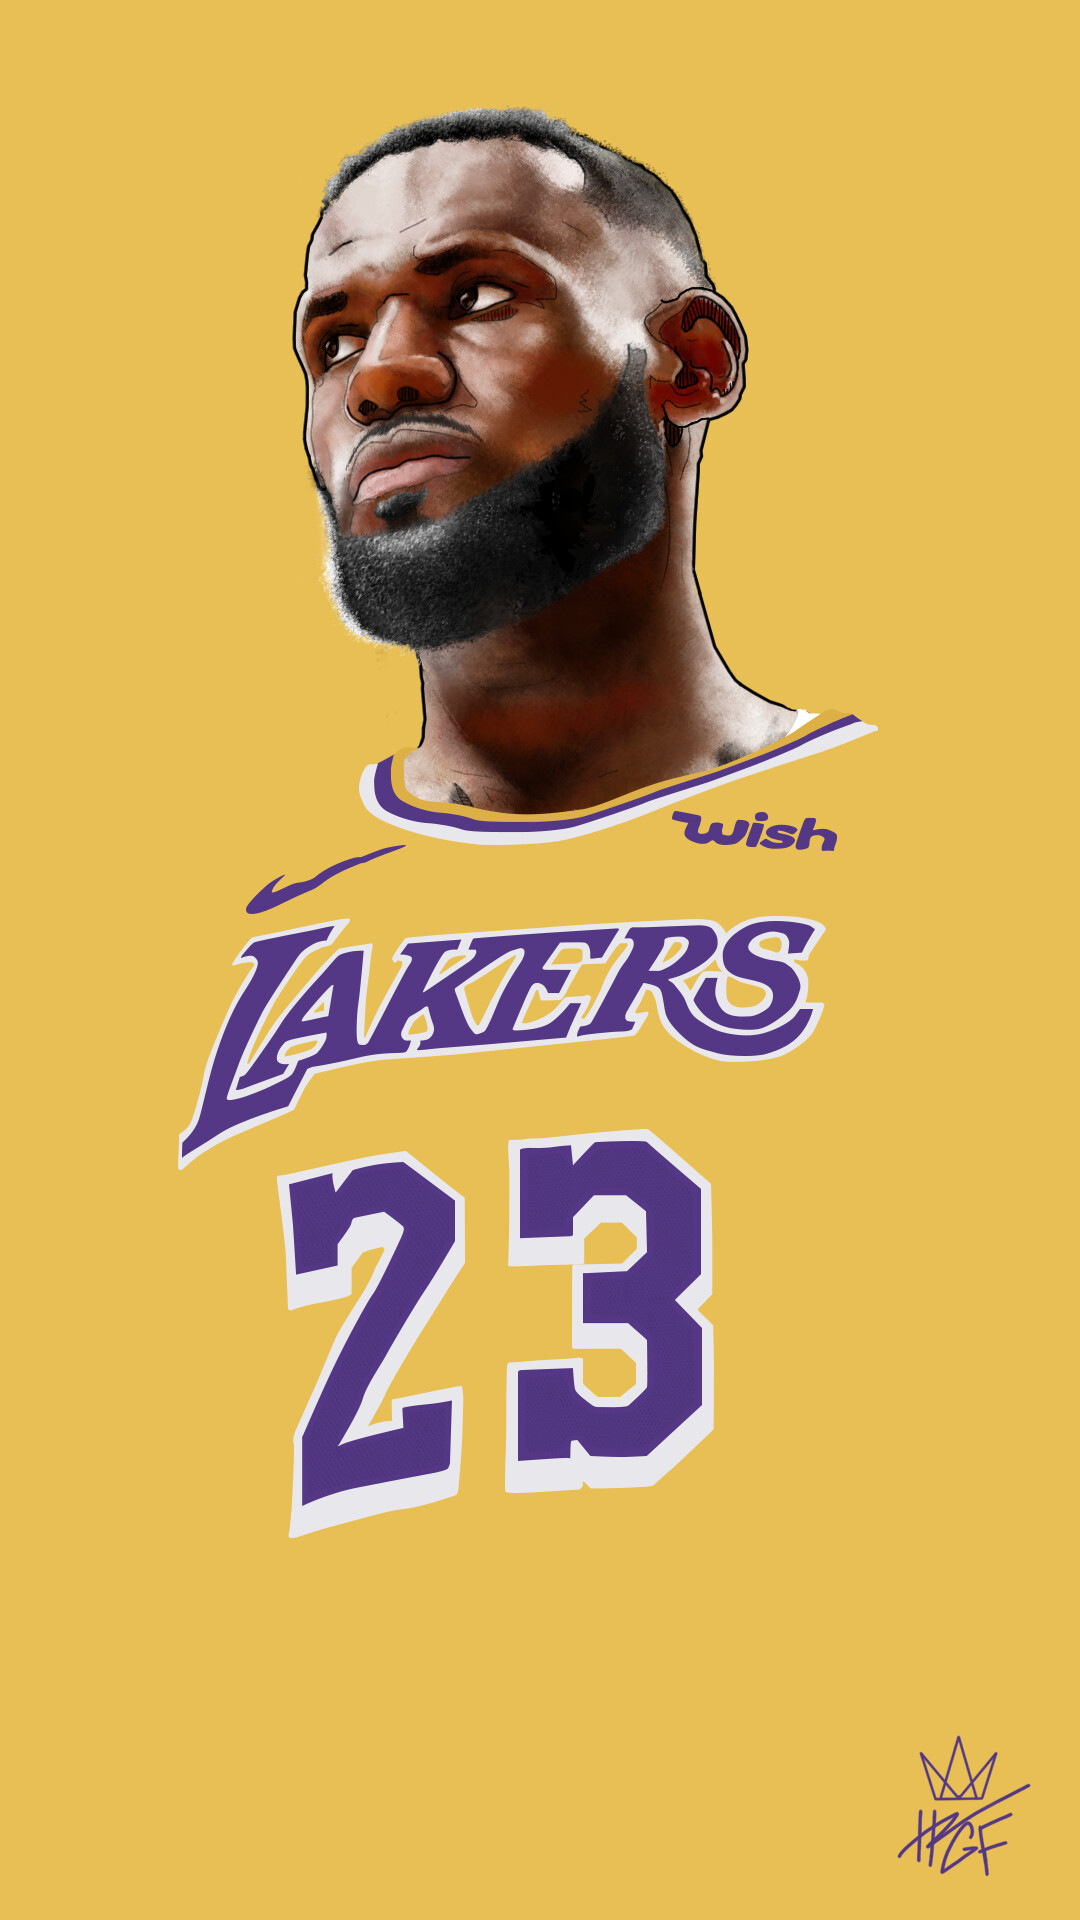 ArtStation - Lebron James Artwork